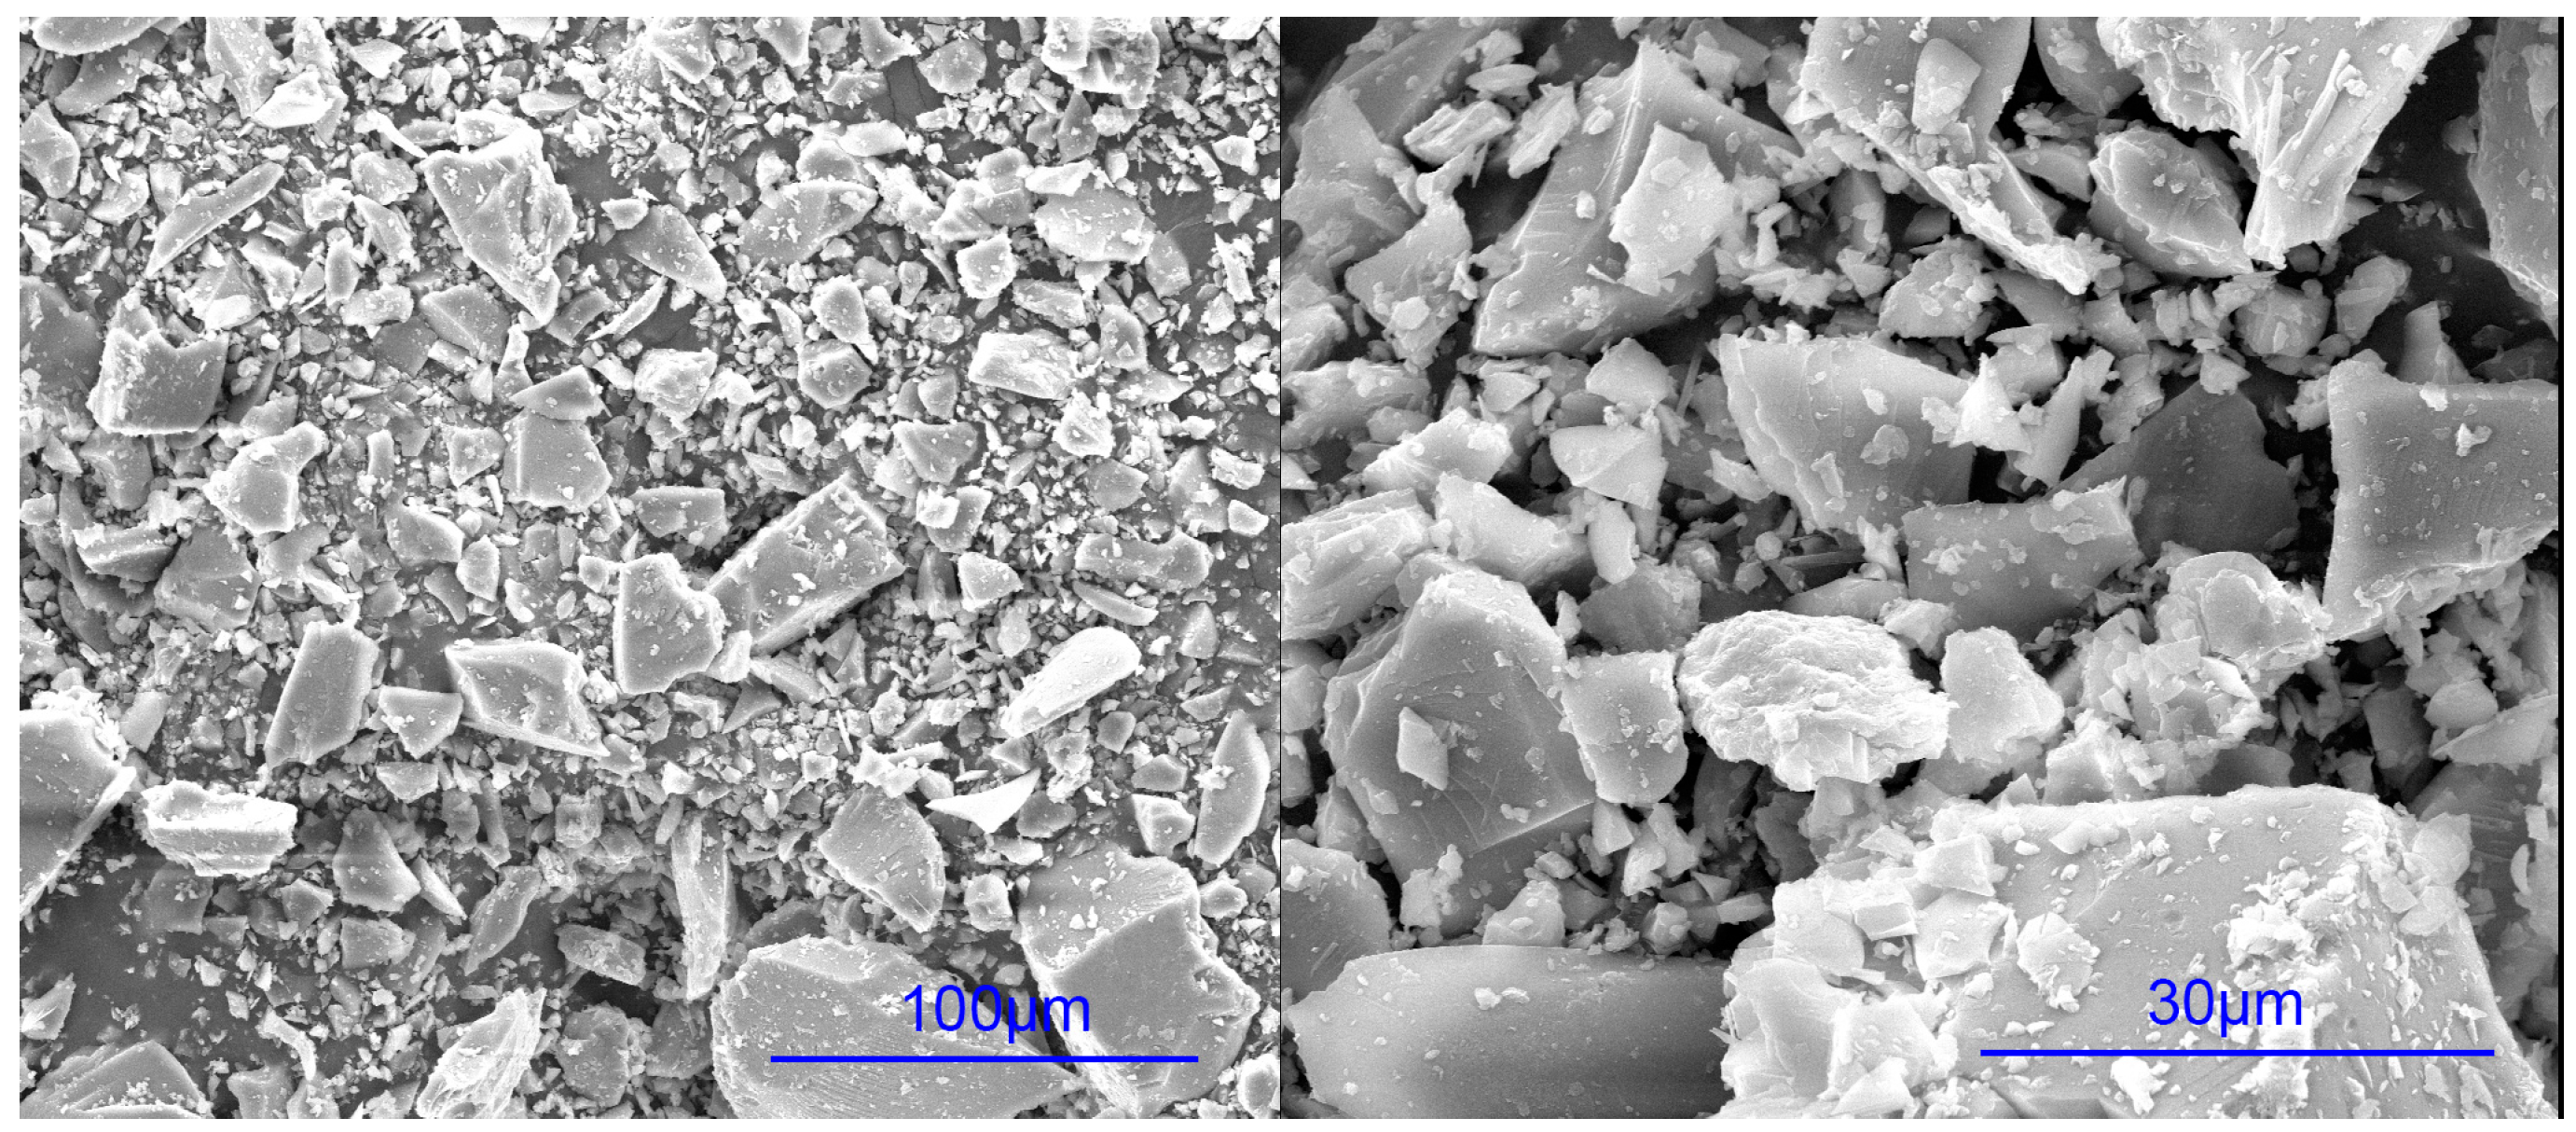 Materials | Free Full-Text | SEM Analysis of the Interfacial Transition Zone between Cement ...